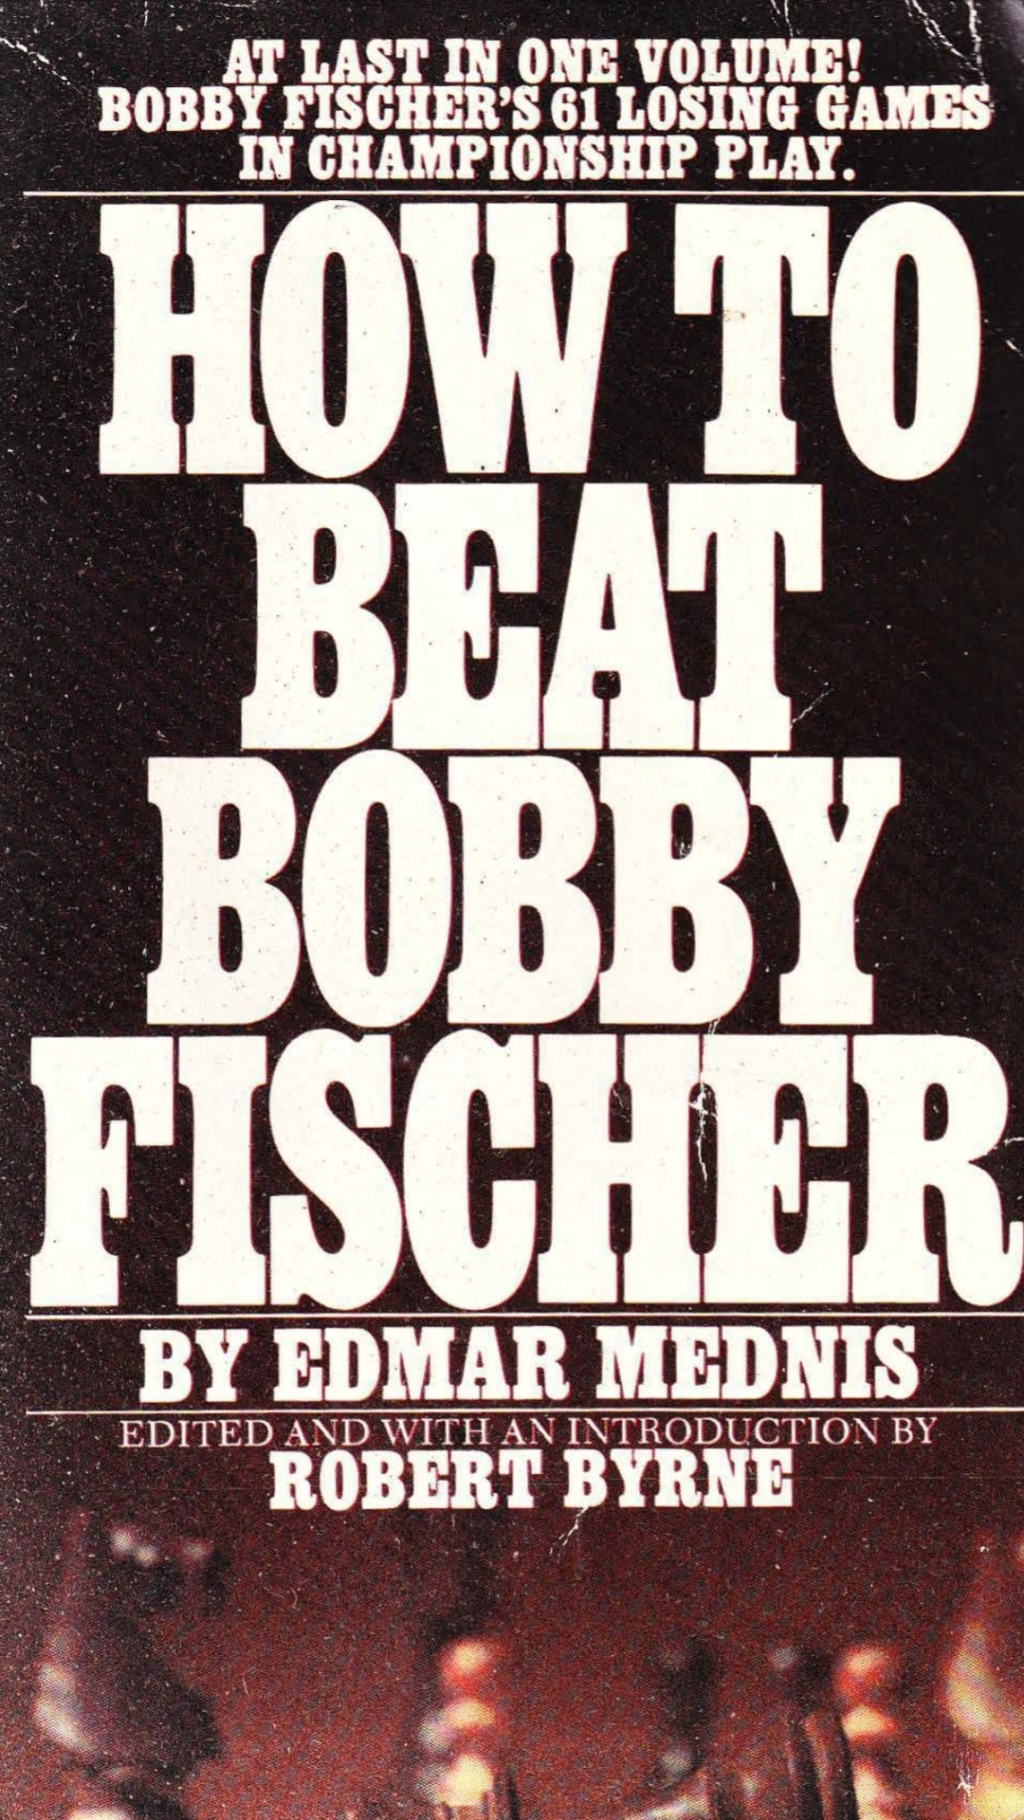 How to beat Bobby Fischer  Book by Edmar Mednis Scree119